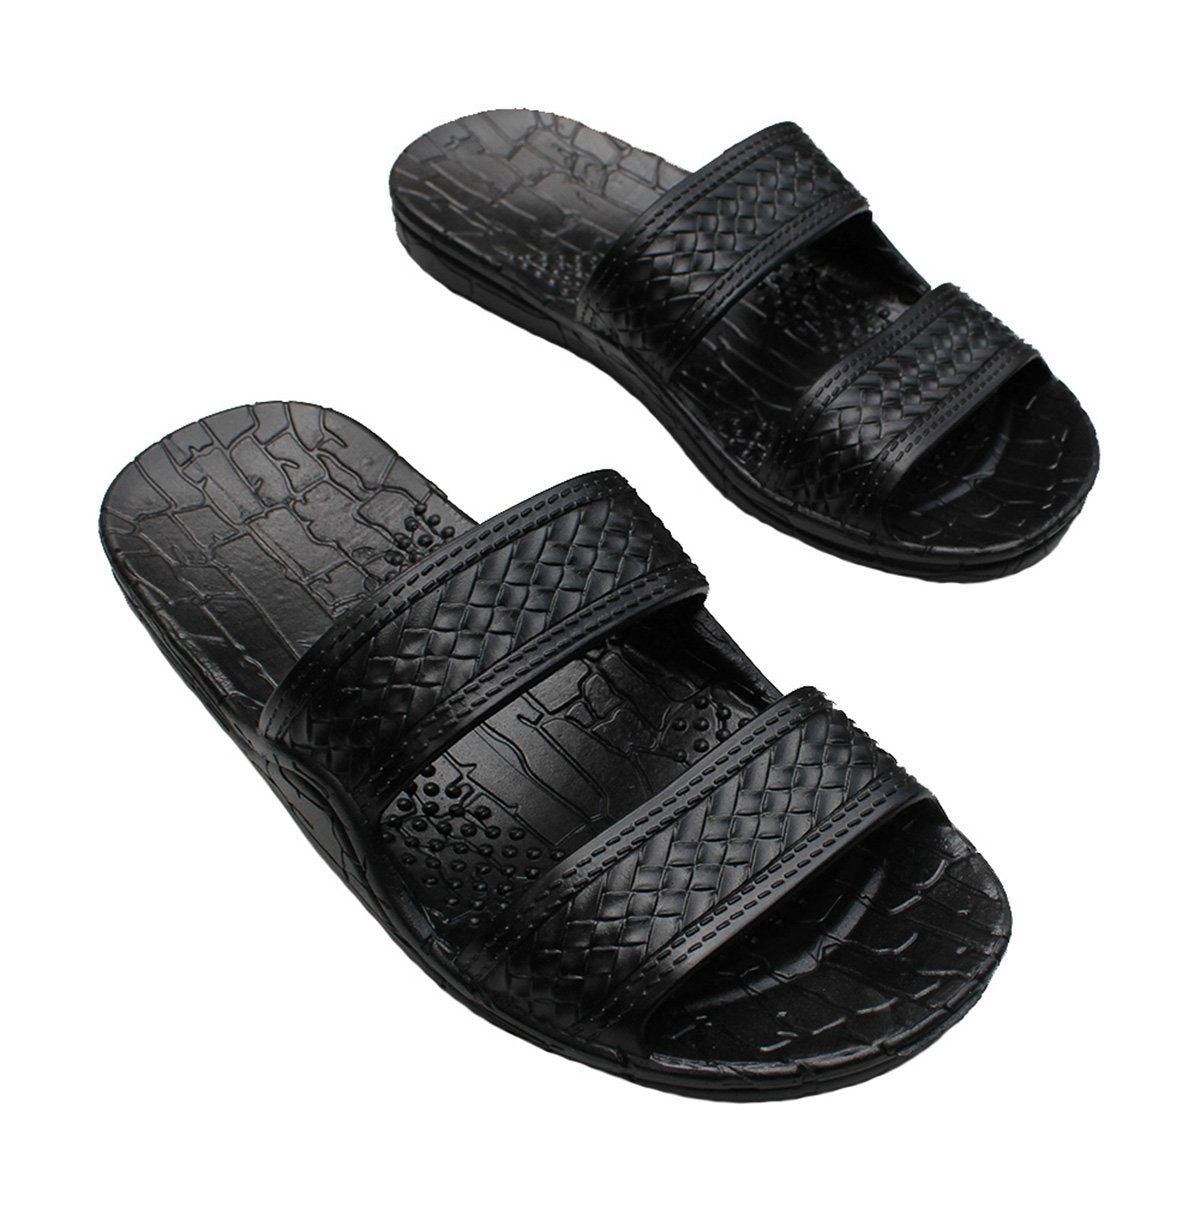 Brown Jesus Sandals | Black Jandals From Hawaii - AlohaShoes.com